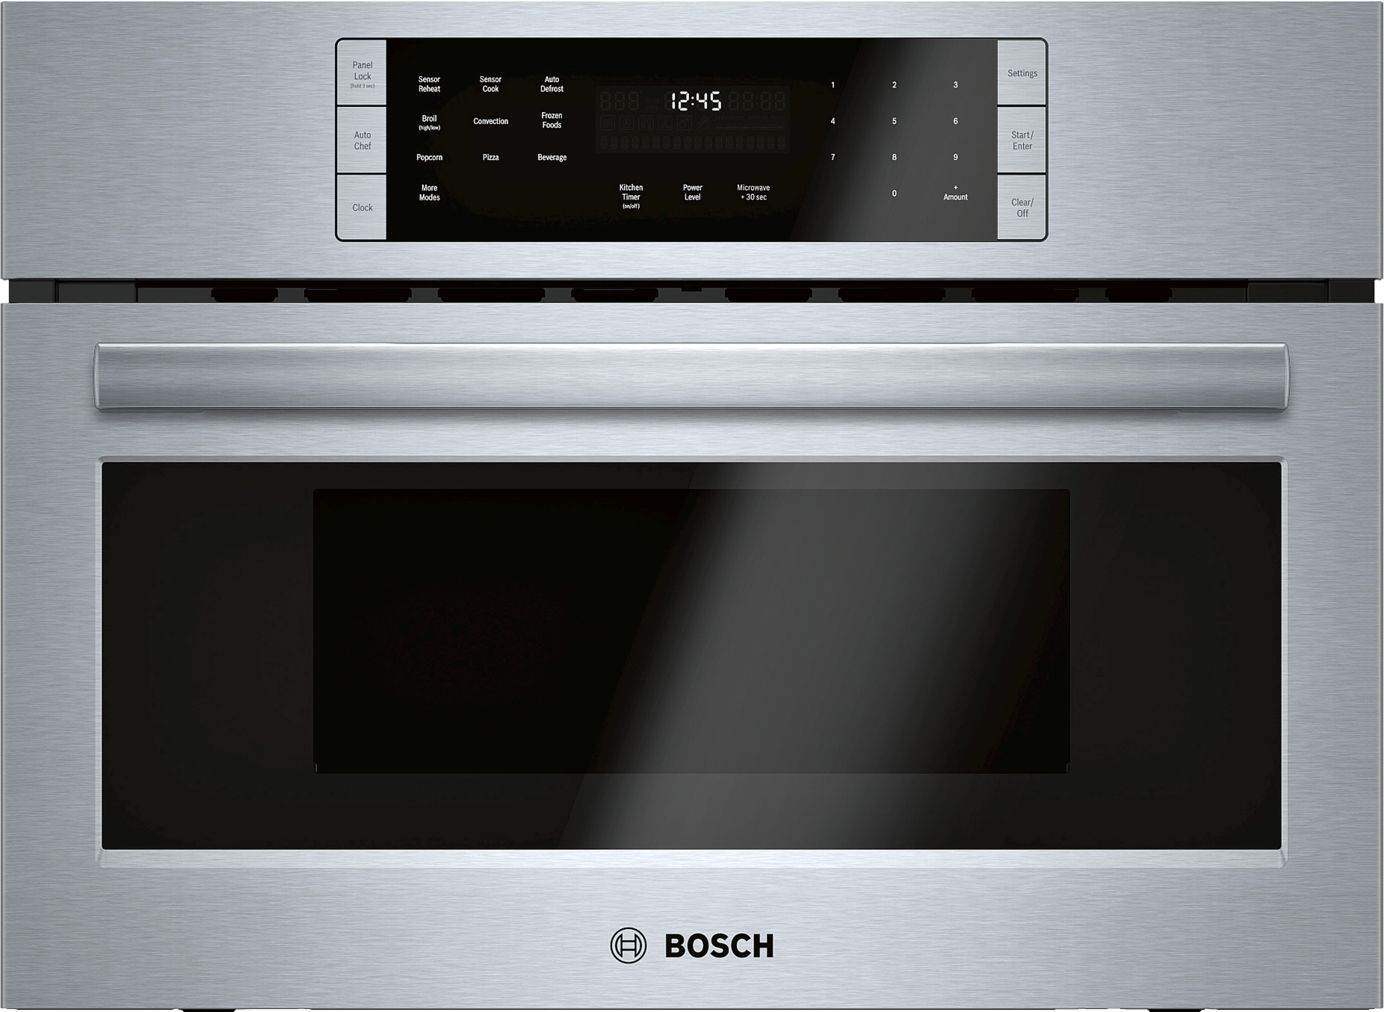 "Bosch 800 Series27"" Speed Oven, HMC87152UC, Stainless Steel"